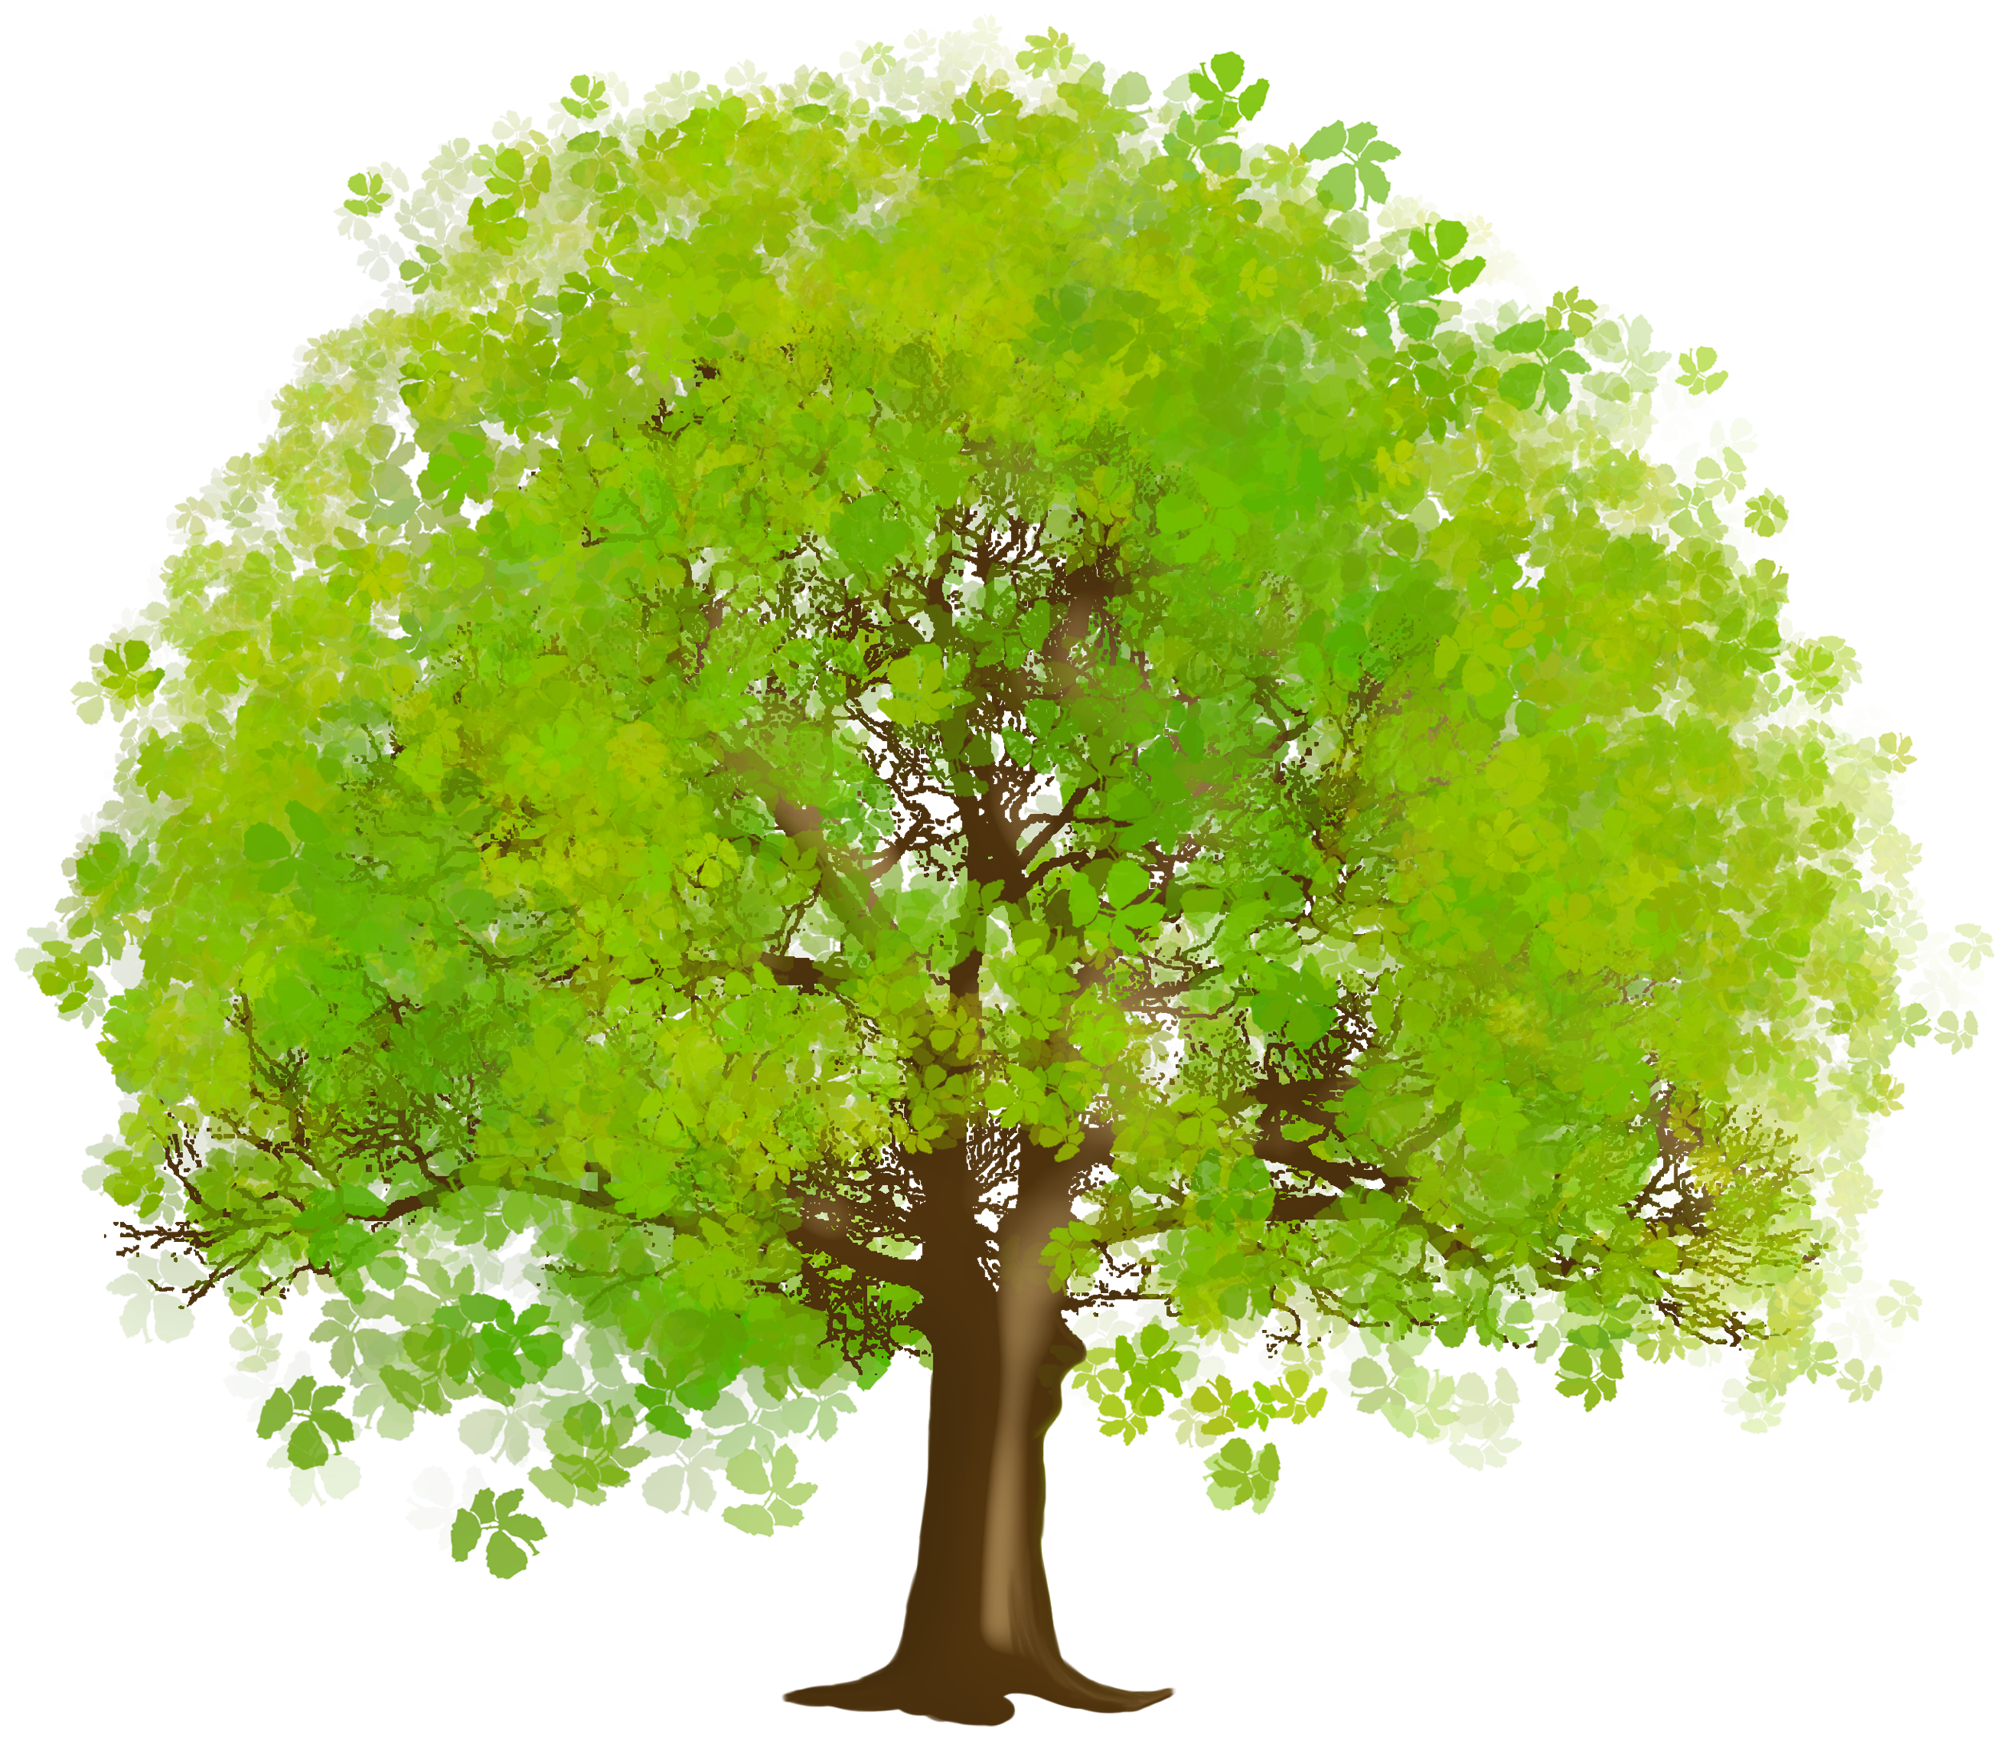 Family tree png. Large green clipart illustrations